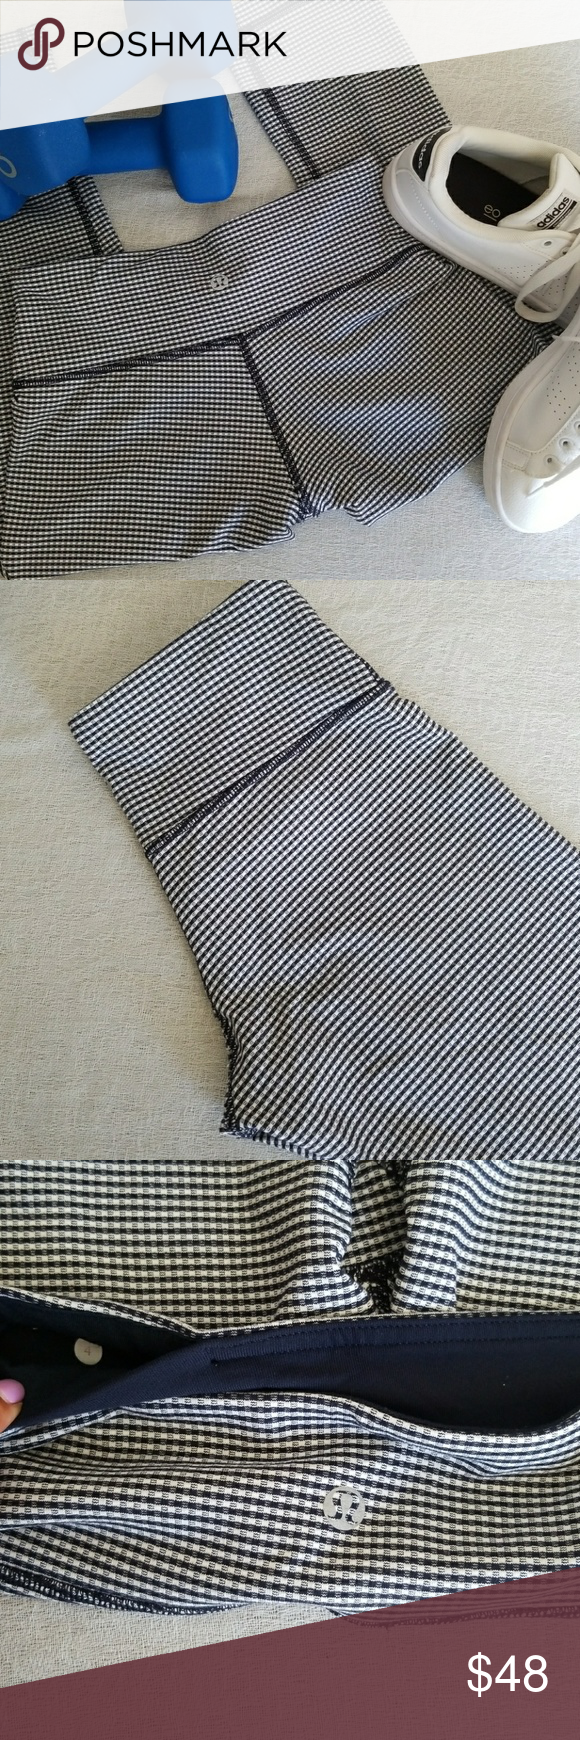 c809fe668 Lululemon Crops 4 EUC No flaws Navy houndstooth Size 4 (XS) 18.5 inseam  Matching top available in other listing lululemon athletica Pants Leggings